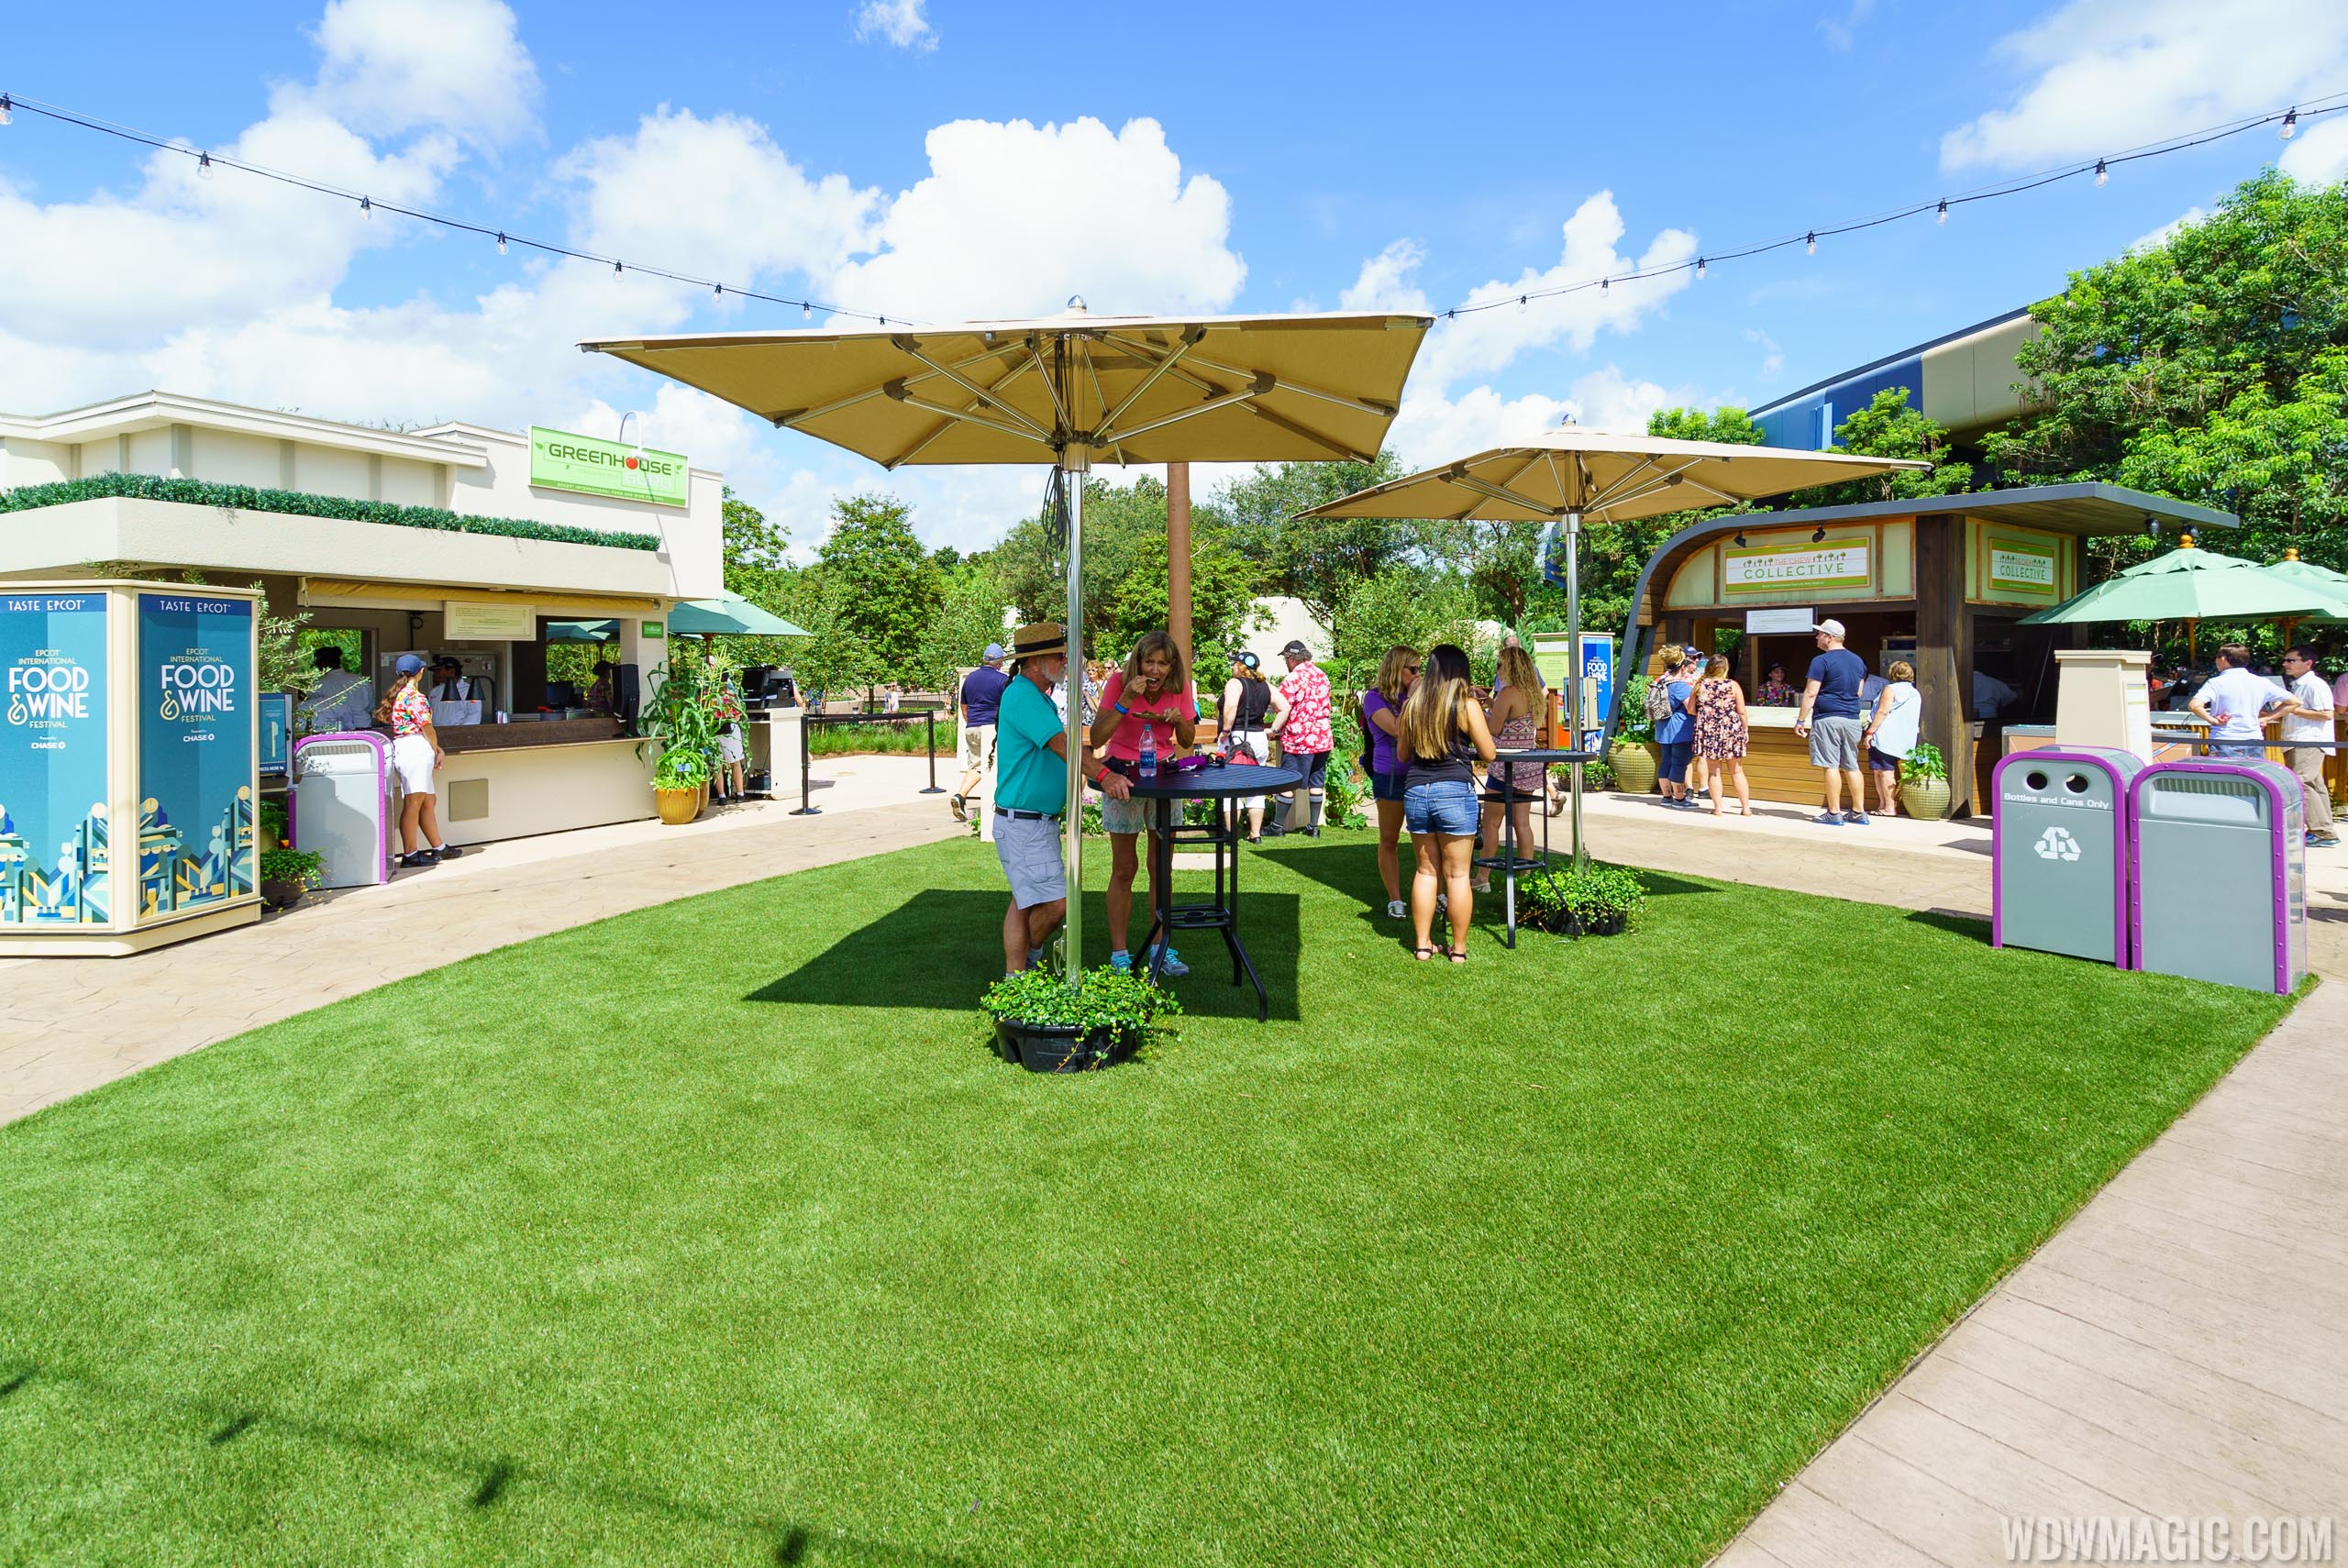 2016 Epcot Food and Wine Festival - The Chew area